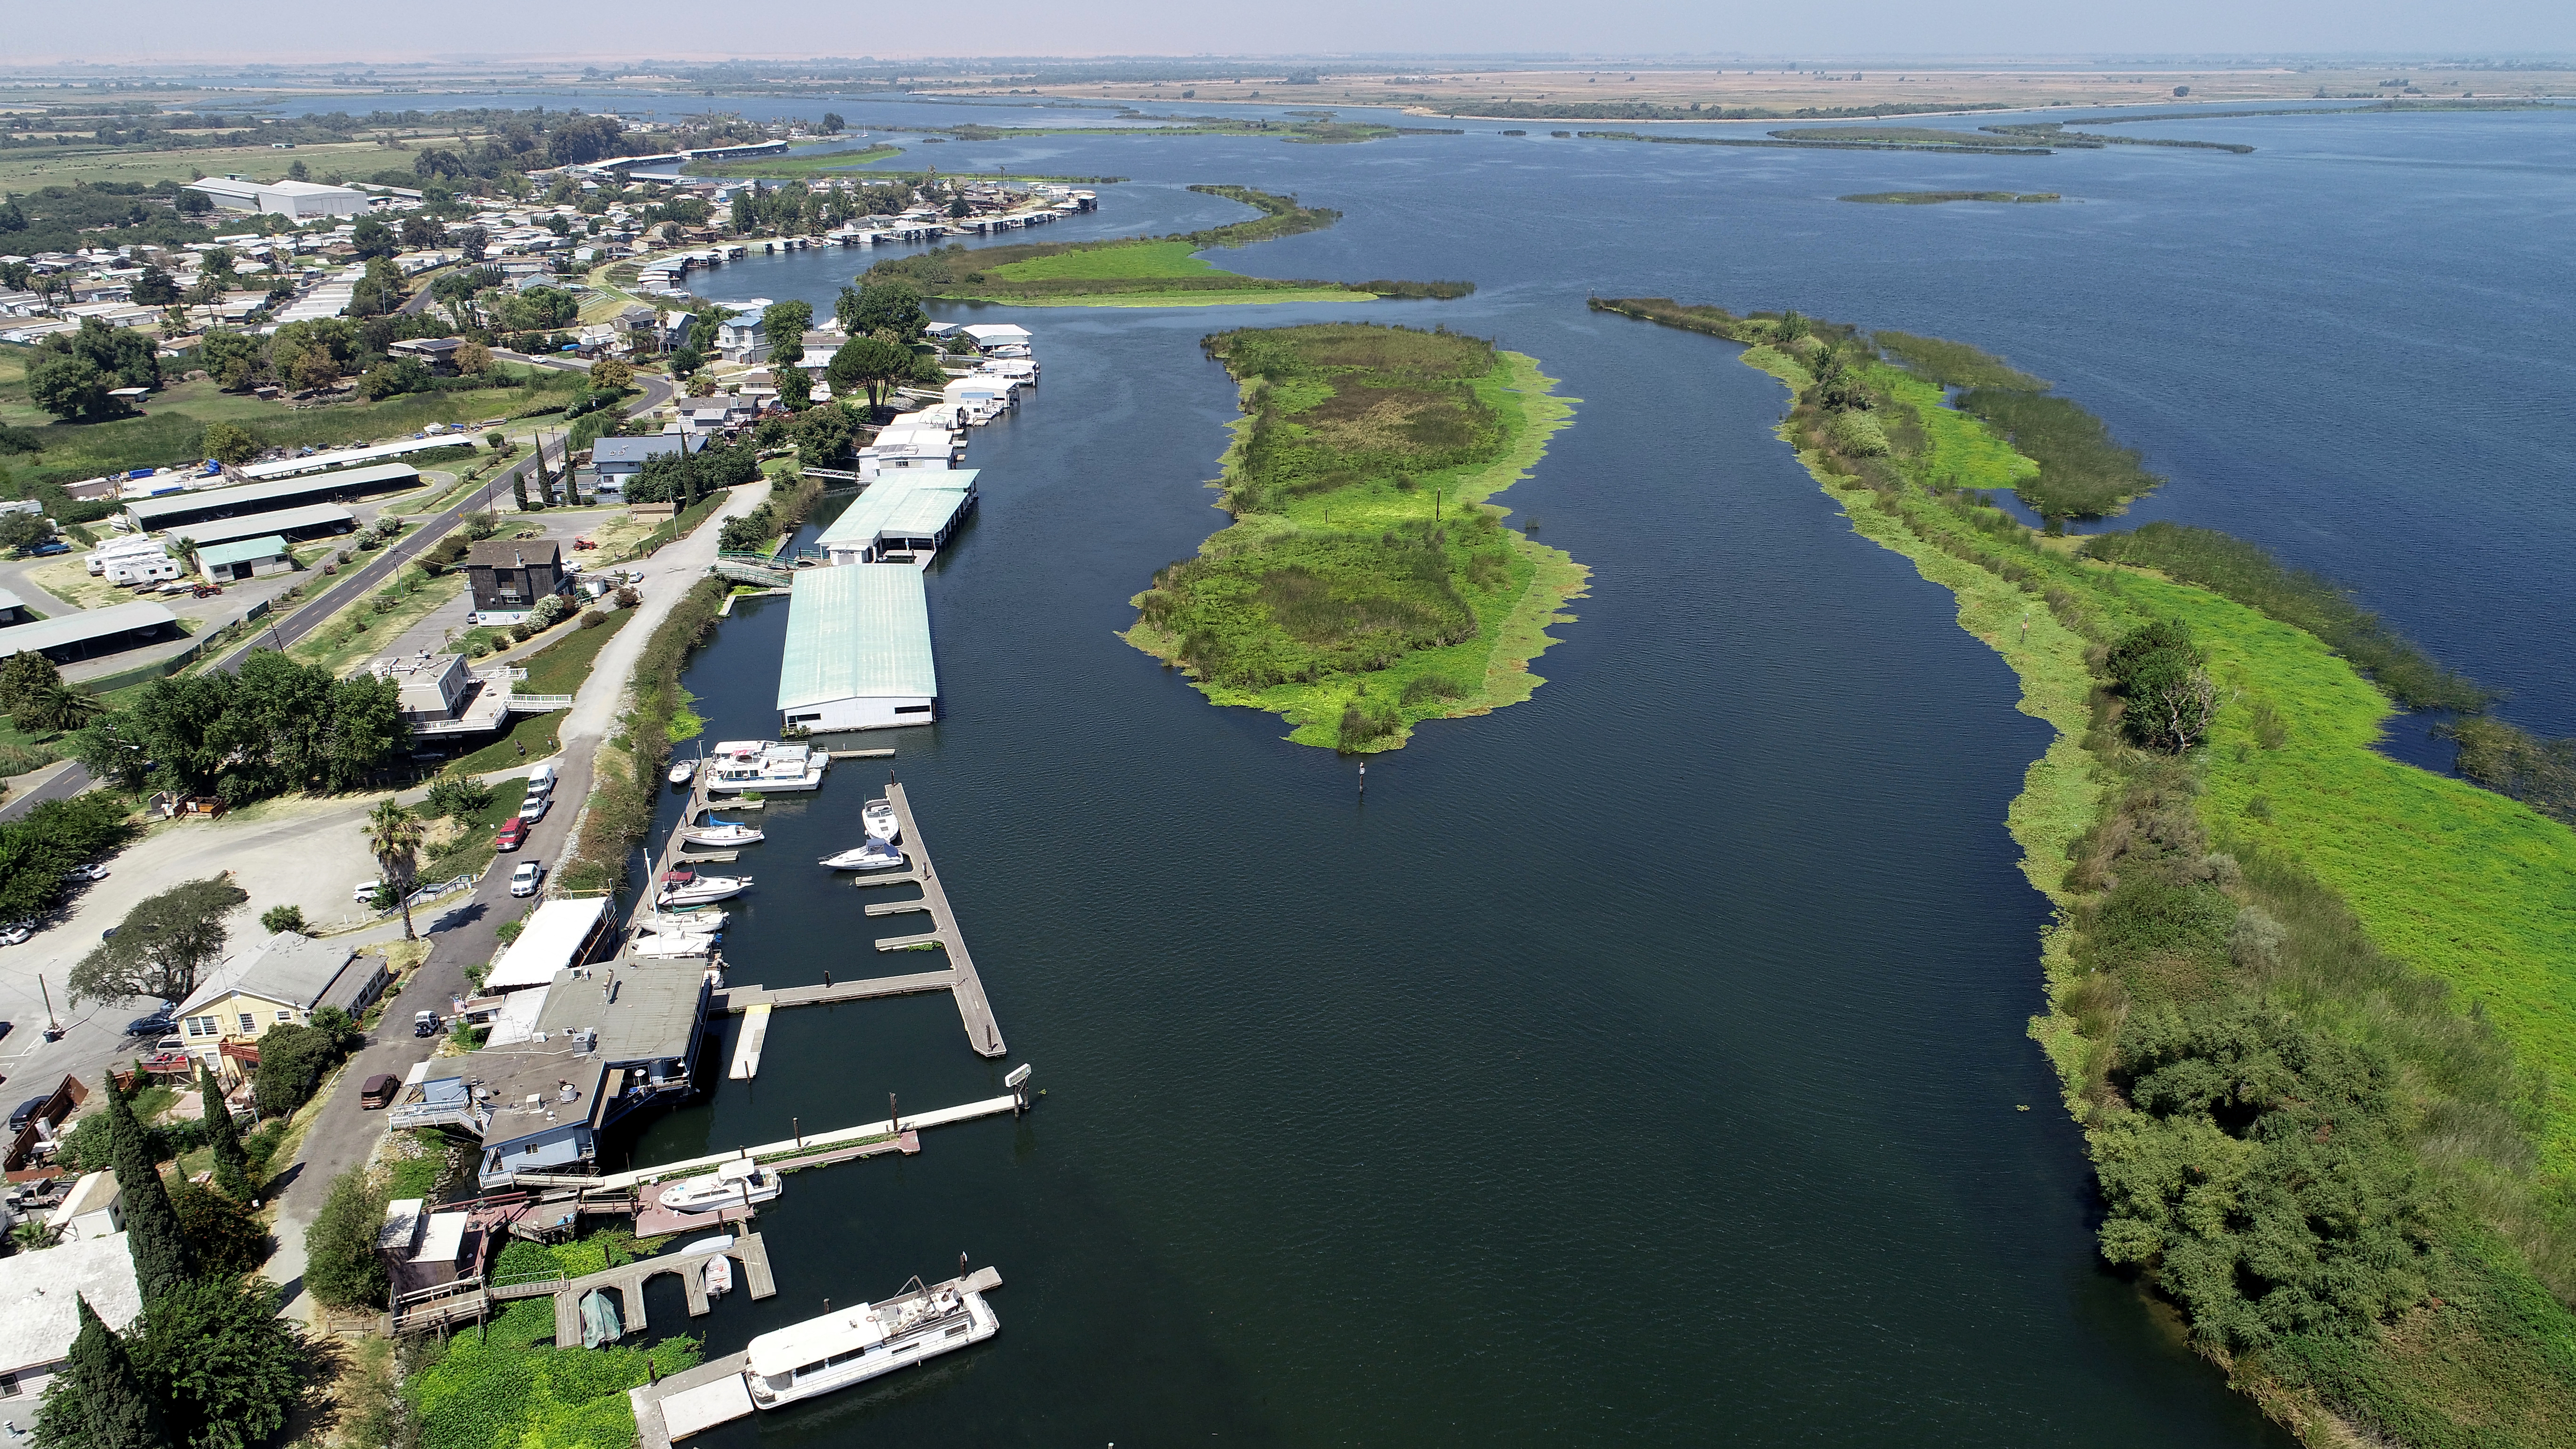 A marina photographed from the air, with white buildings on the left and green, verdant sandbars on the right.